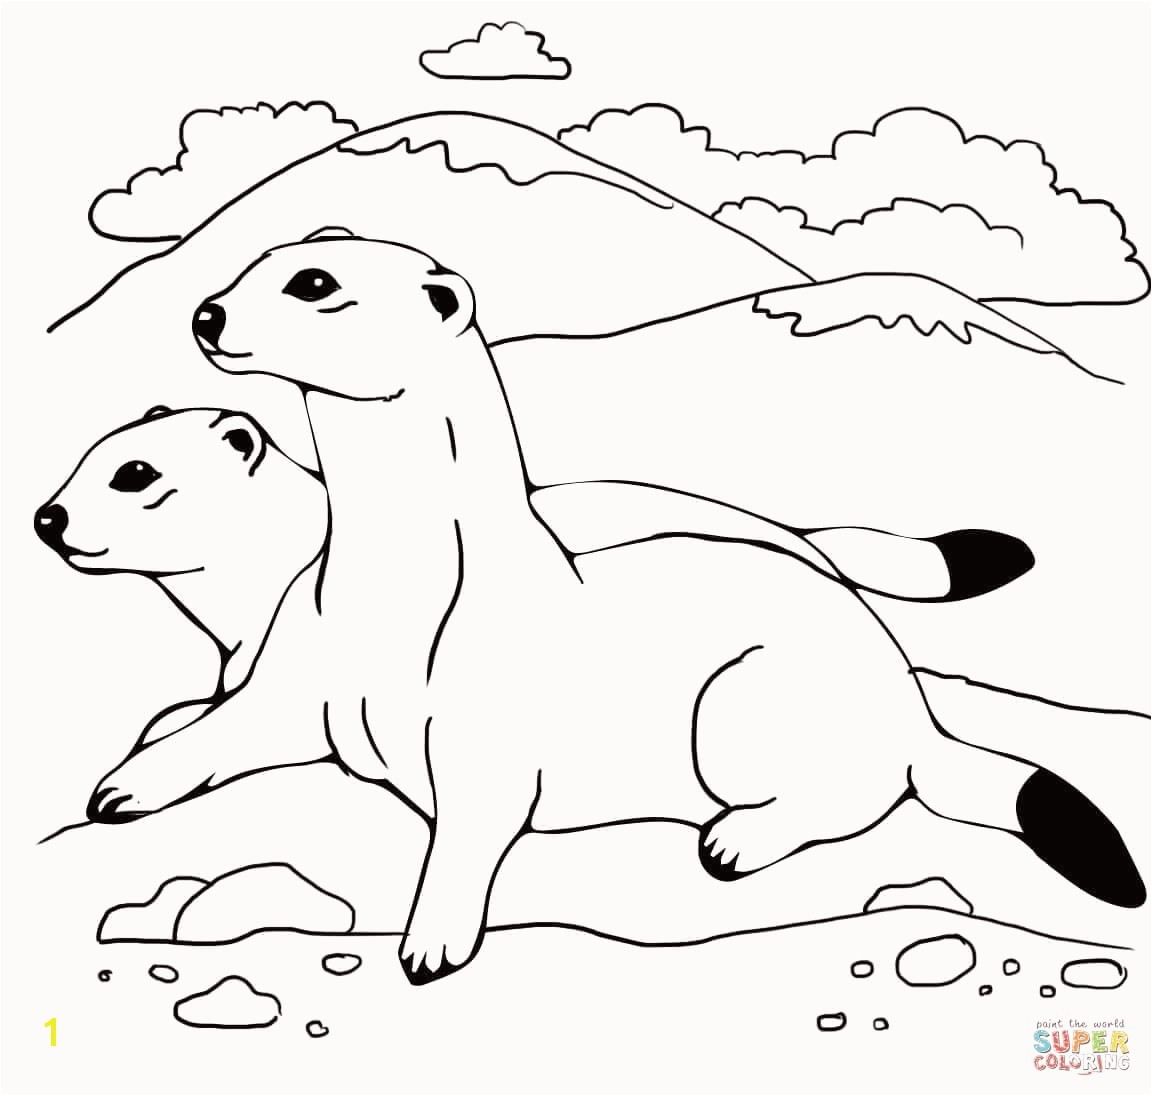 Weasel Coloring Pages Amazing Weasel Mustela Coloring Pages Collection Weasel Coloring Pages Elegant Weasel 16